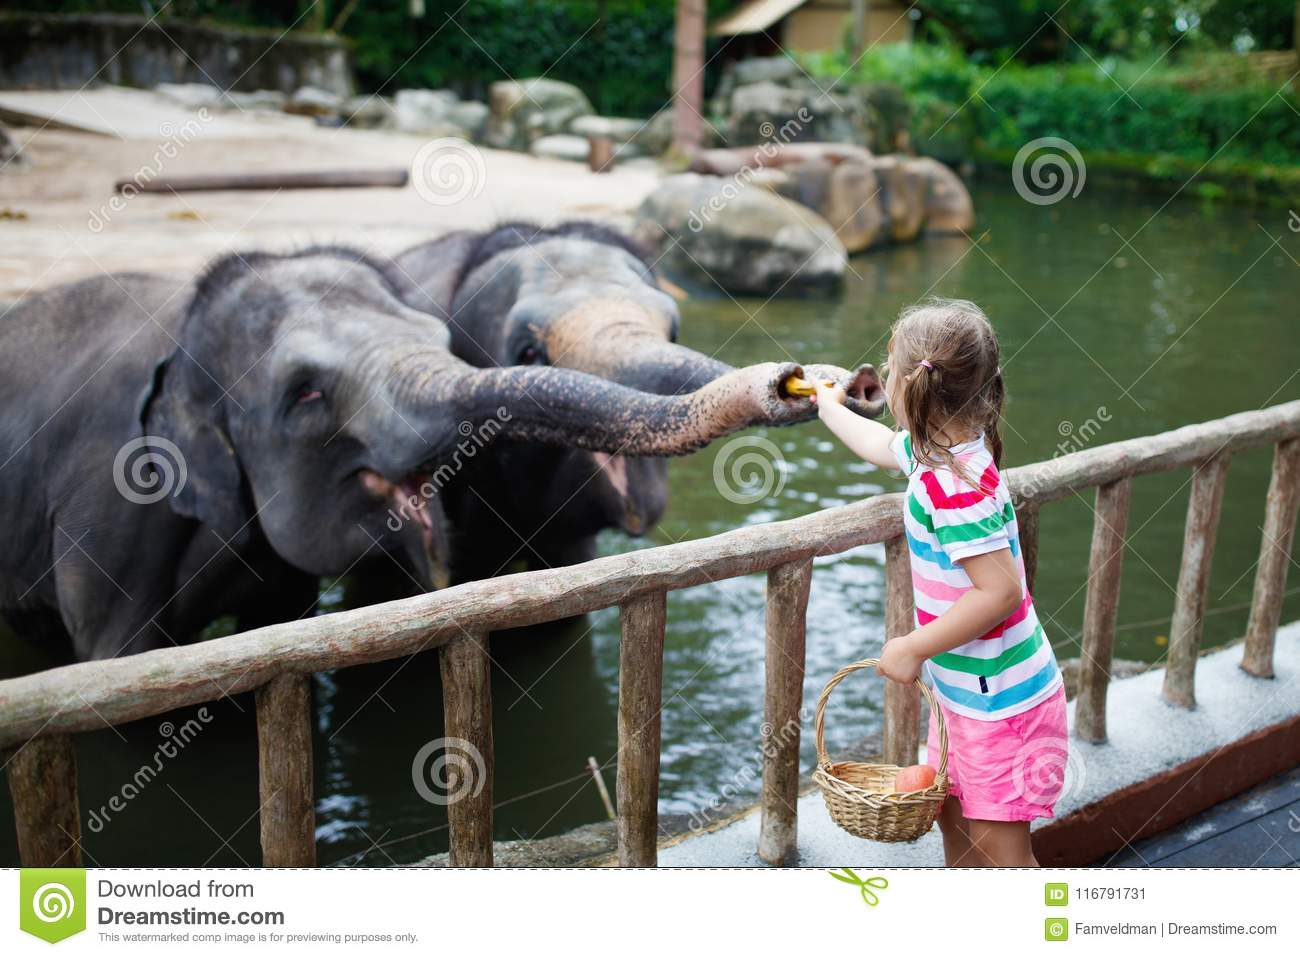 Kids feed elephant in zoo. Family at animal park.